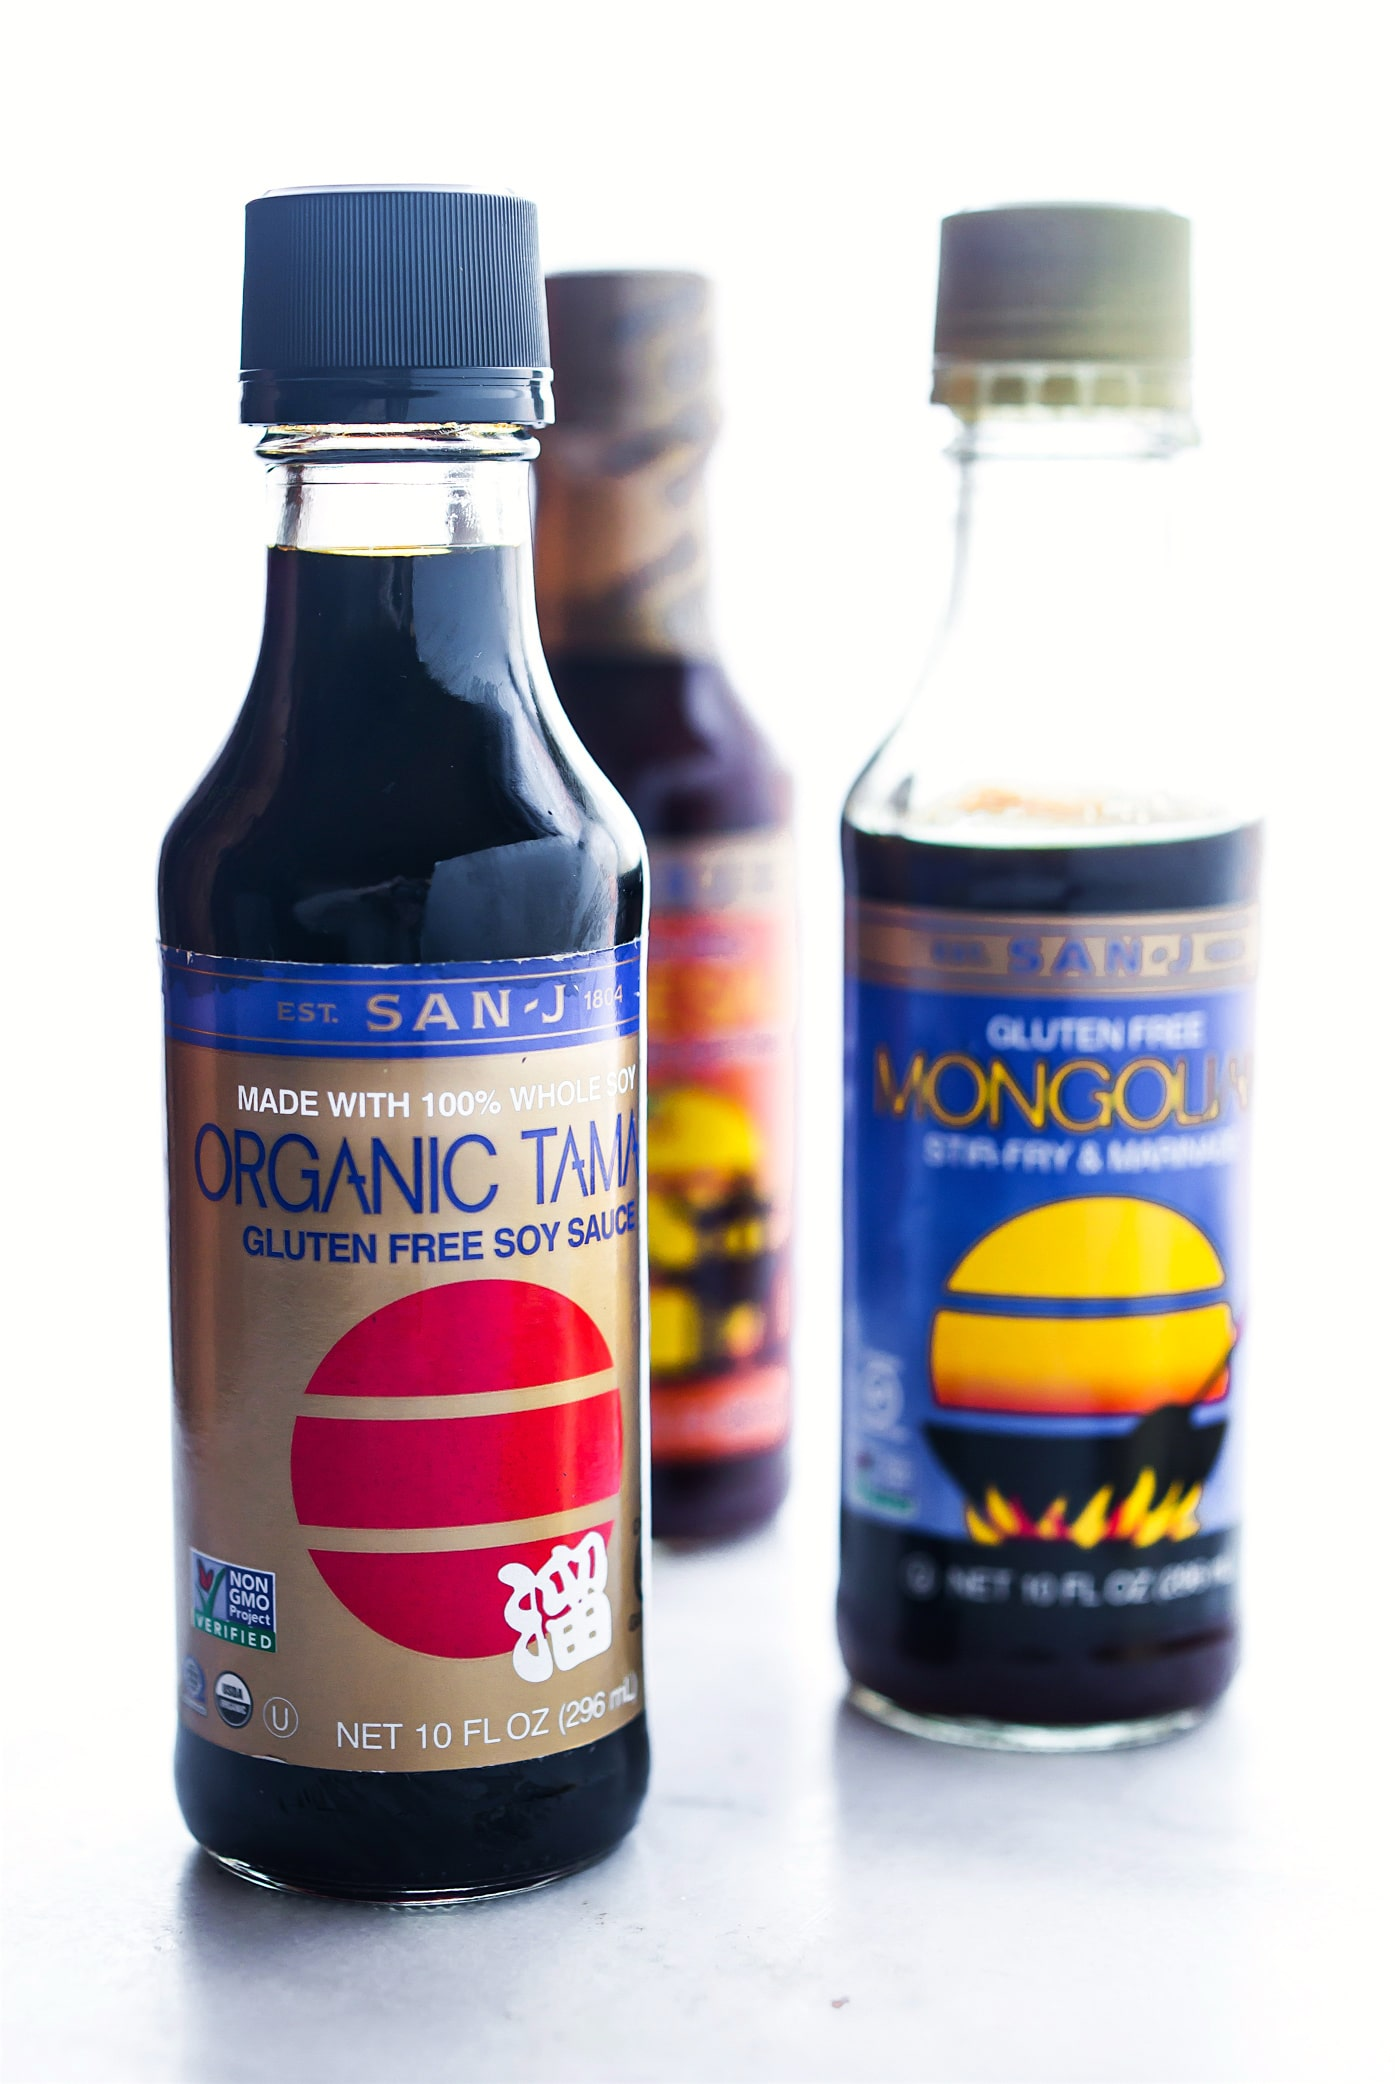 bottles of San-J Organic Tamari Sauce and Mongolian sauce